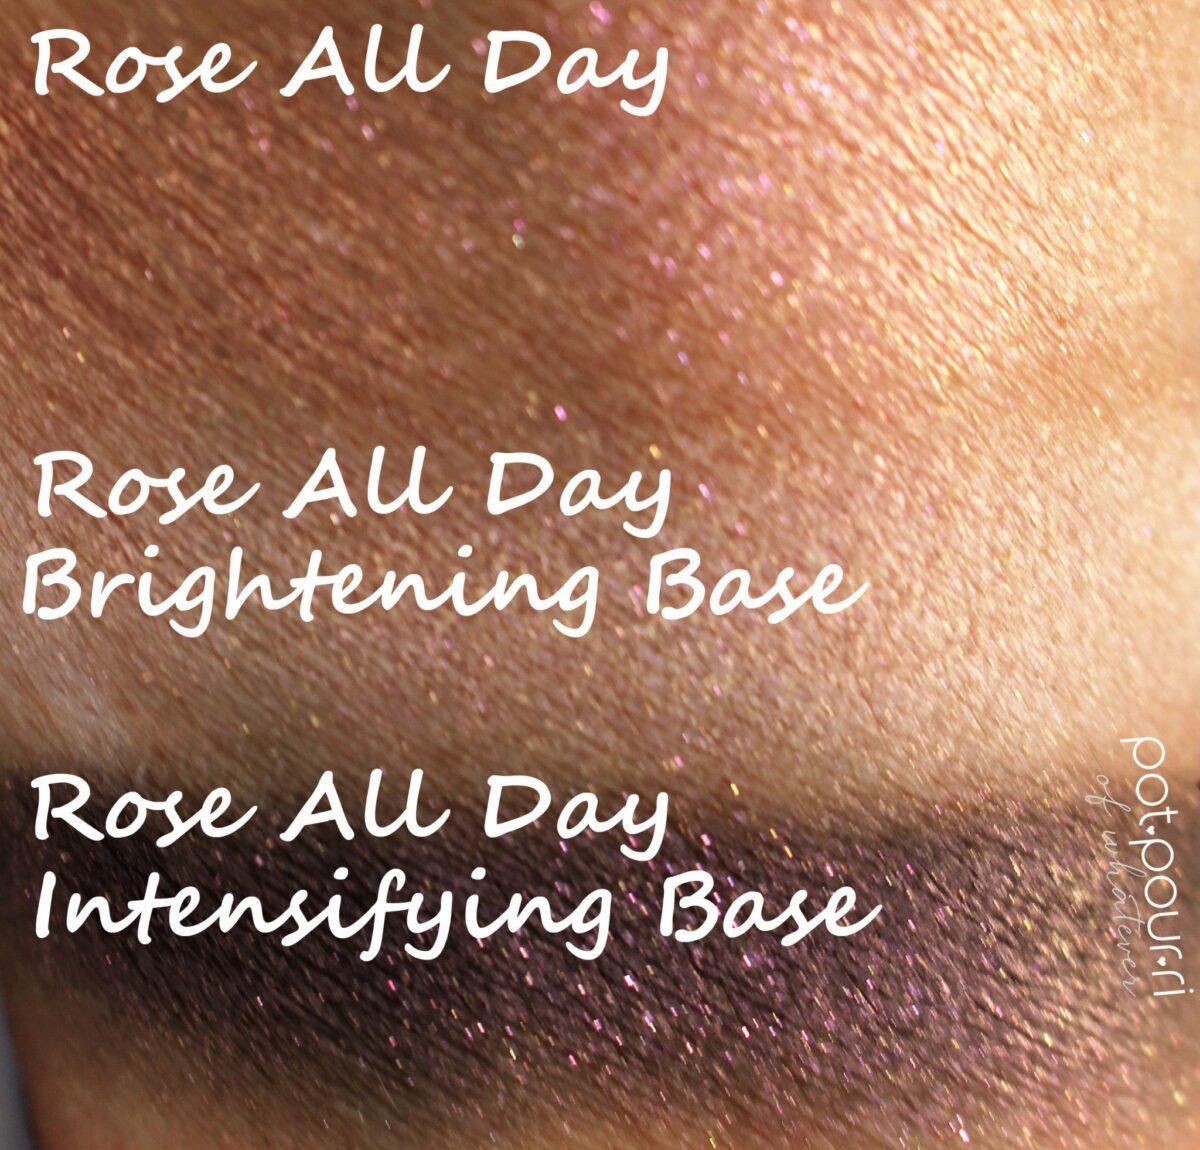 Two-faced-rose-all-day-swatched